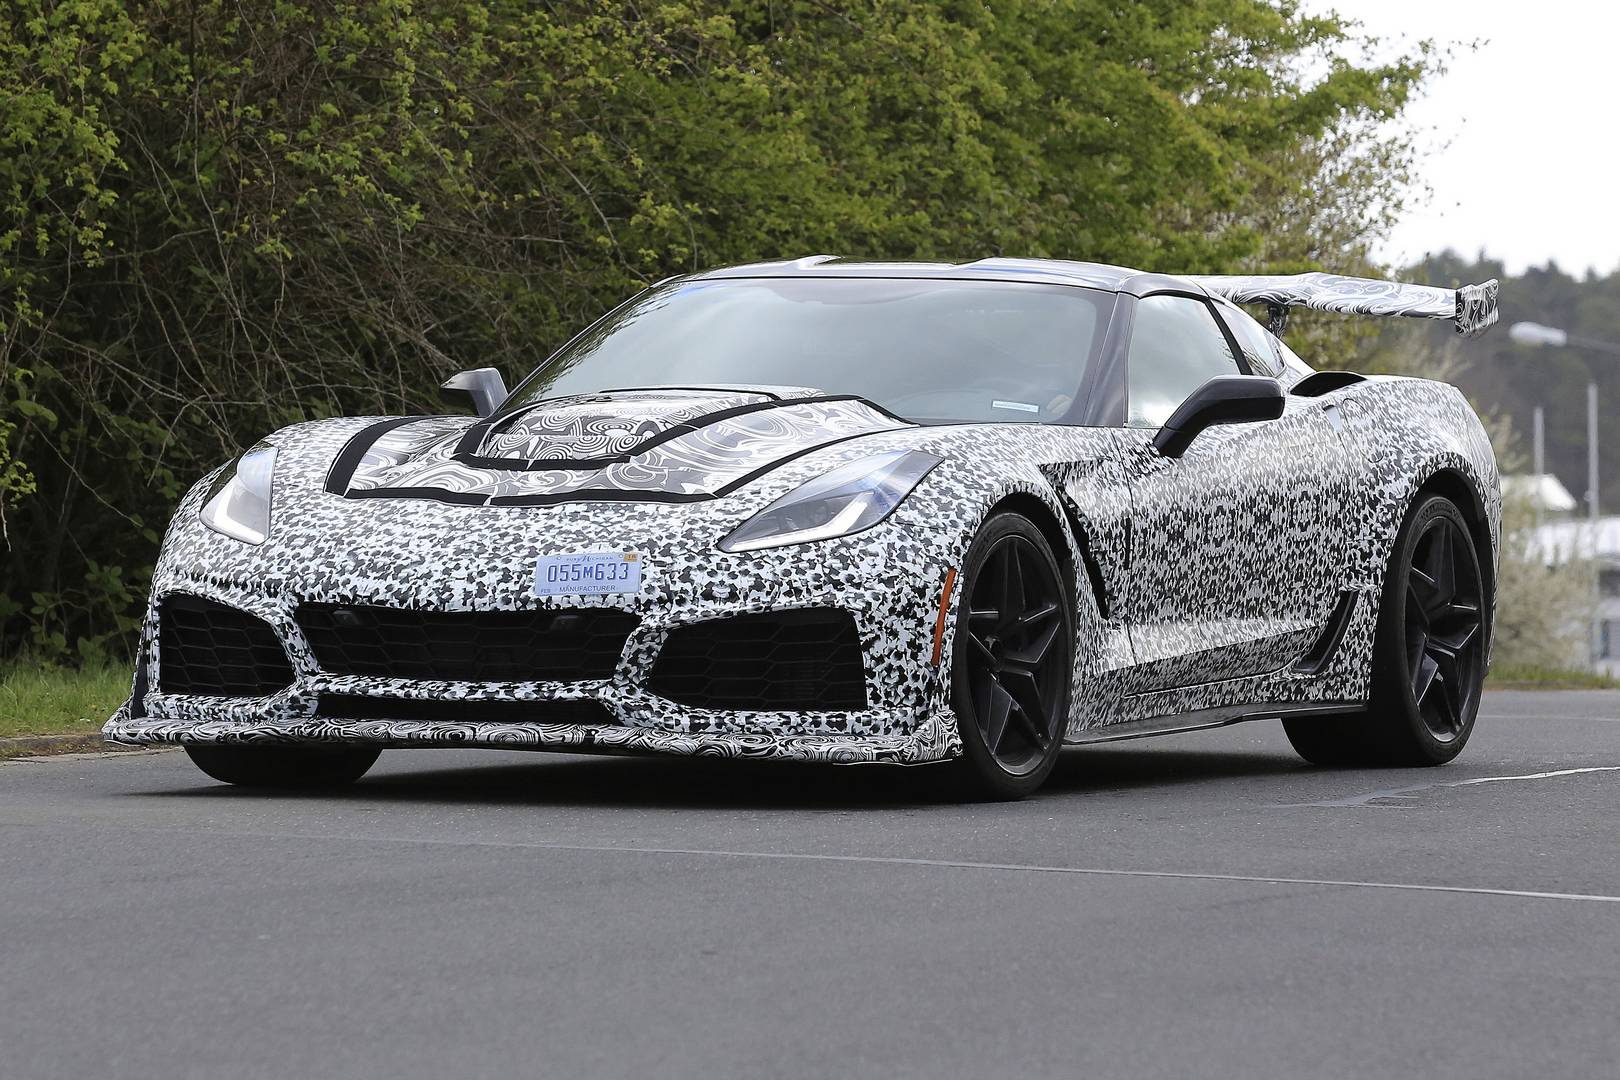 2018 corvette zr1 newest spy shots gtspirit. Black Bedroom Furniture Sets. Home Design Ideas